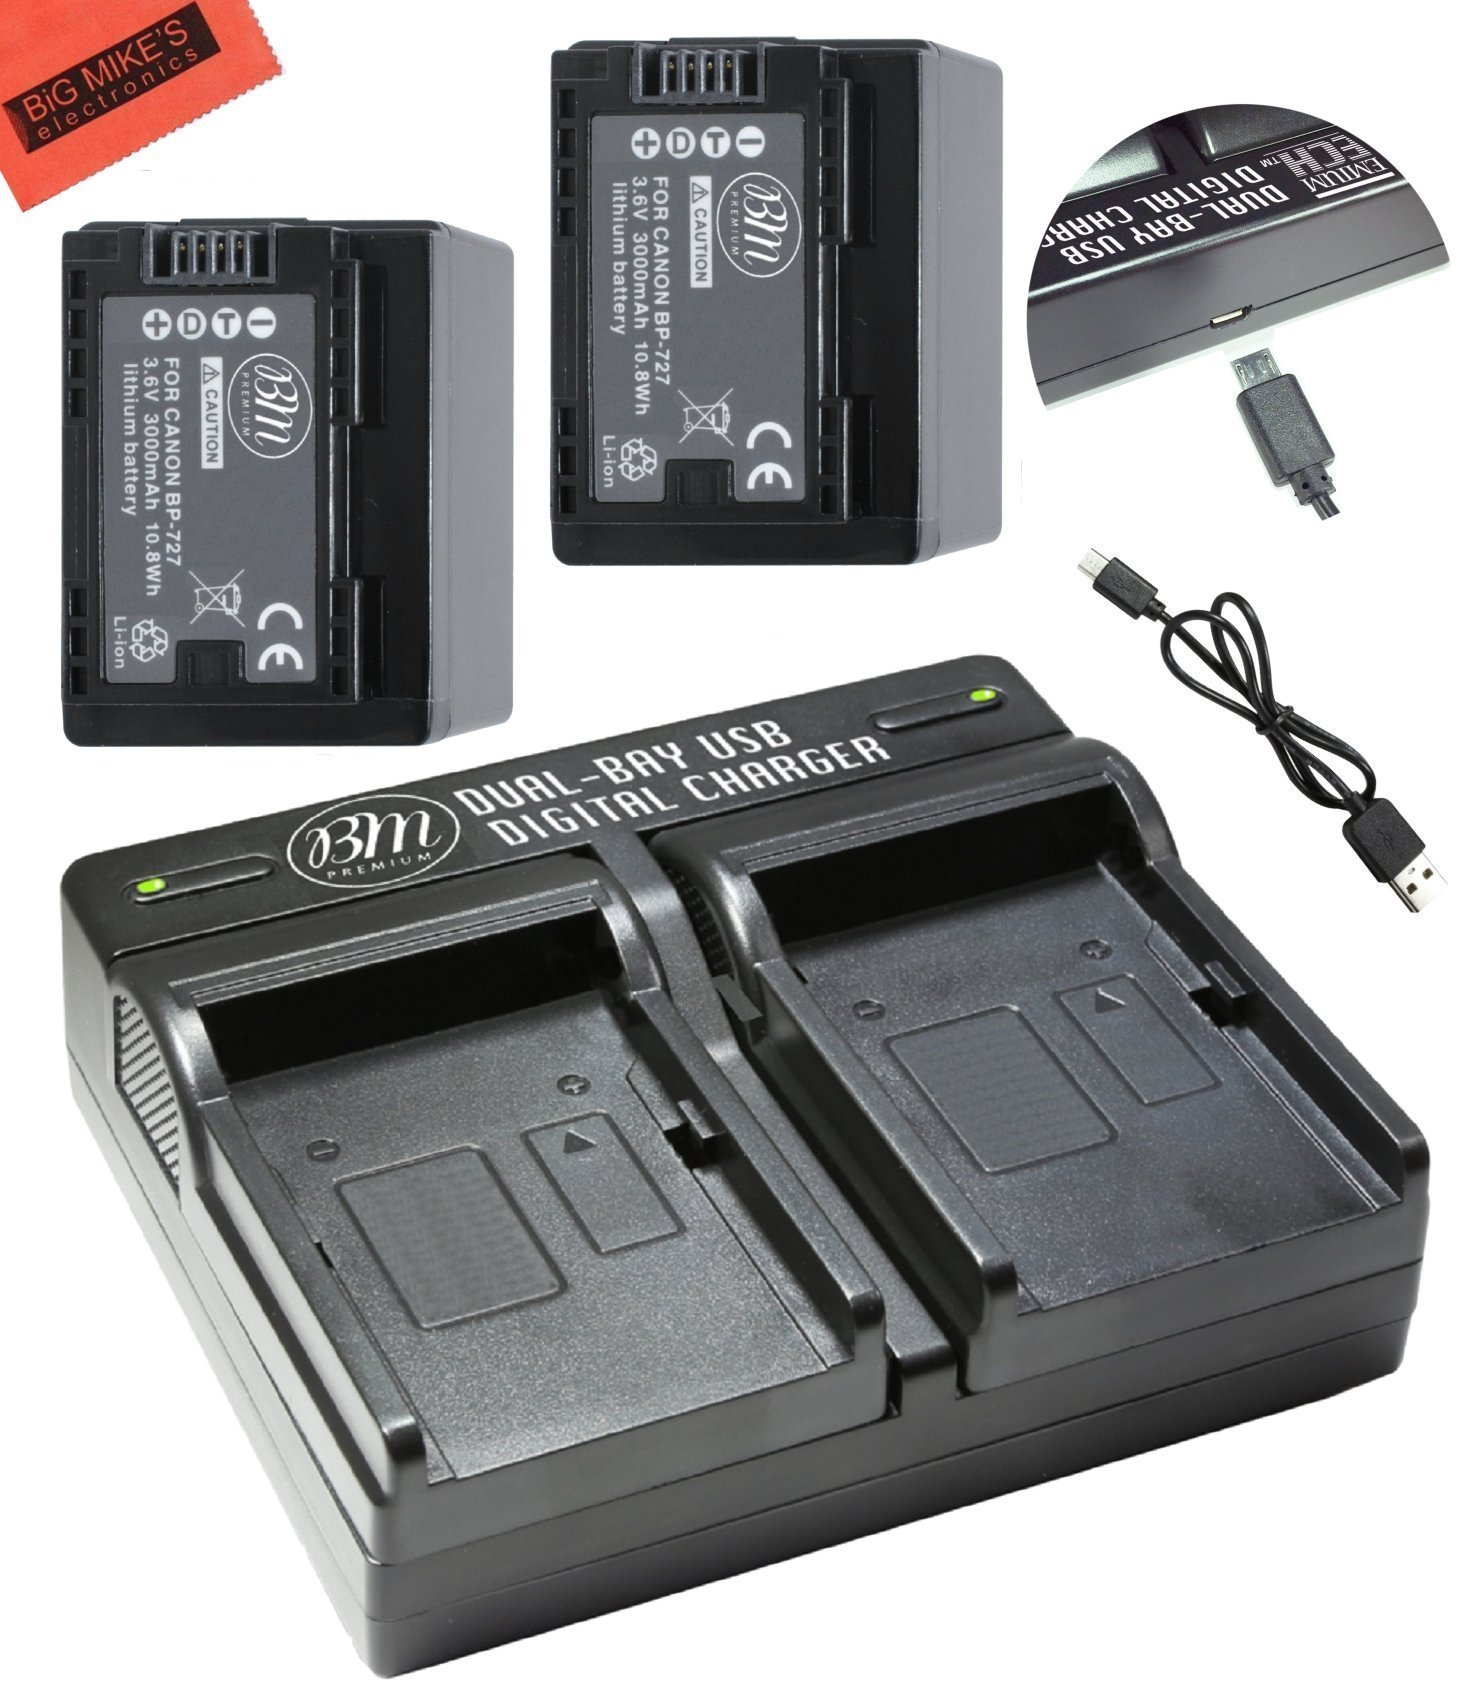 BM Premium 2 BP-727 Batteries and Dual Charger for Canon Vixia HFR80 HFR82 HFR800, HFR70, HFR72, HFR700, HFR32, HFR300, HFR40, HFR42, HFR400, HFR50, HFR52, HFR500, HFR60, HFR62, HFR600 Camcorder by BM Premium